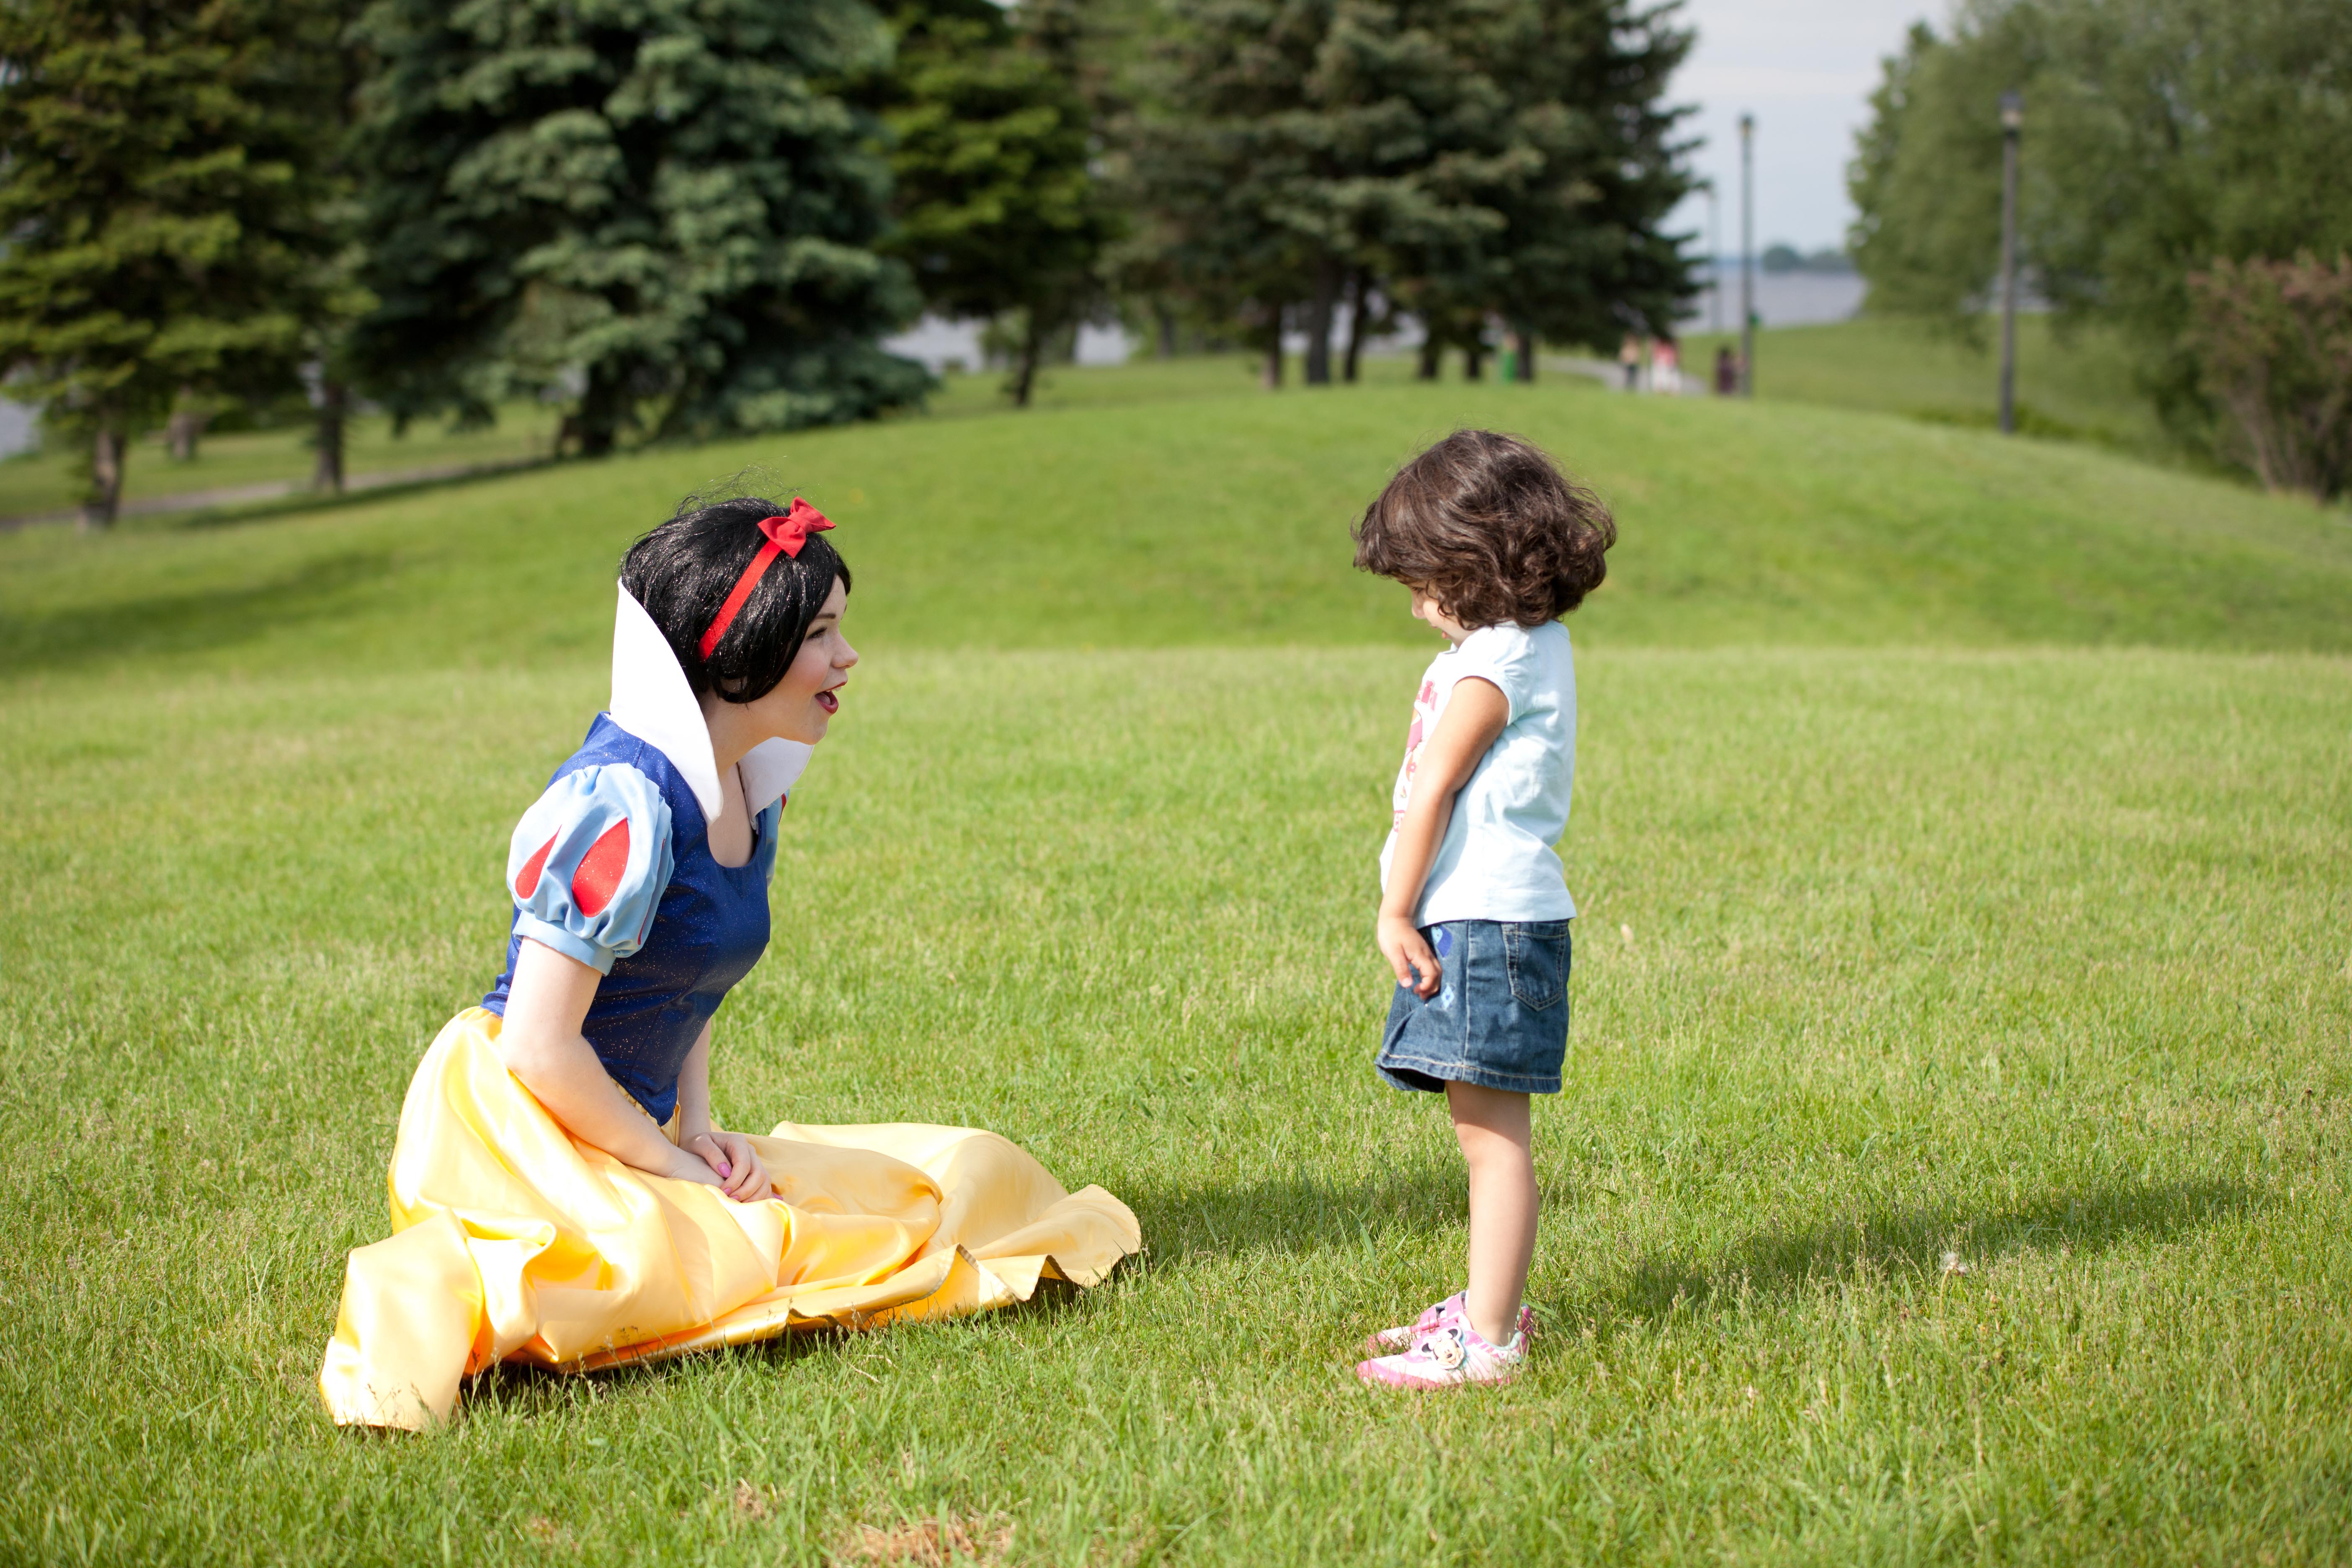 My total fav pic ever! Snow White and her lil fan